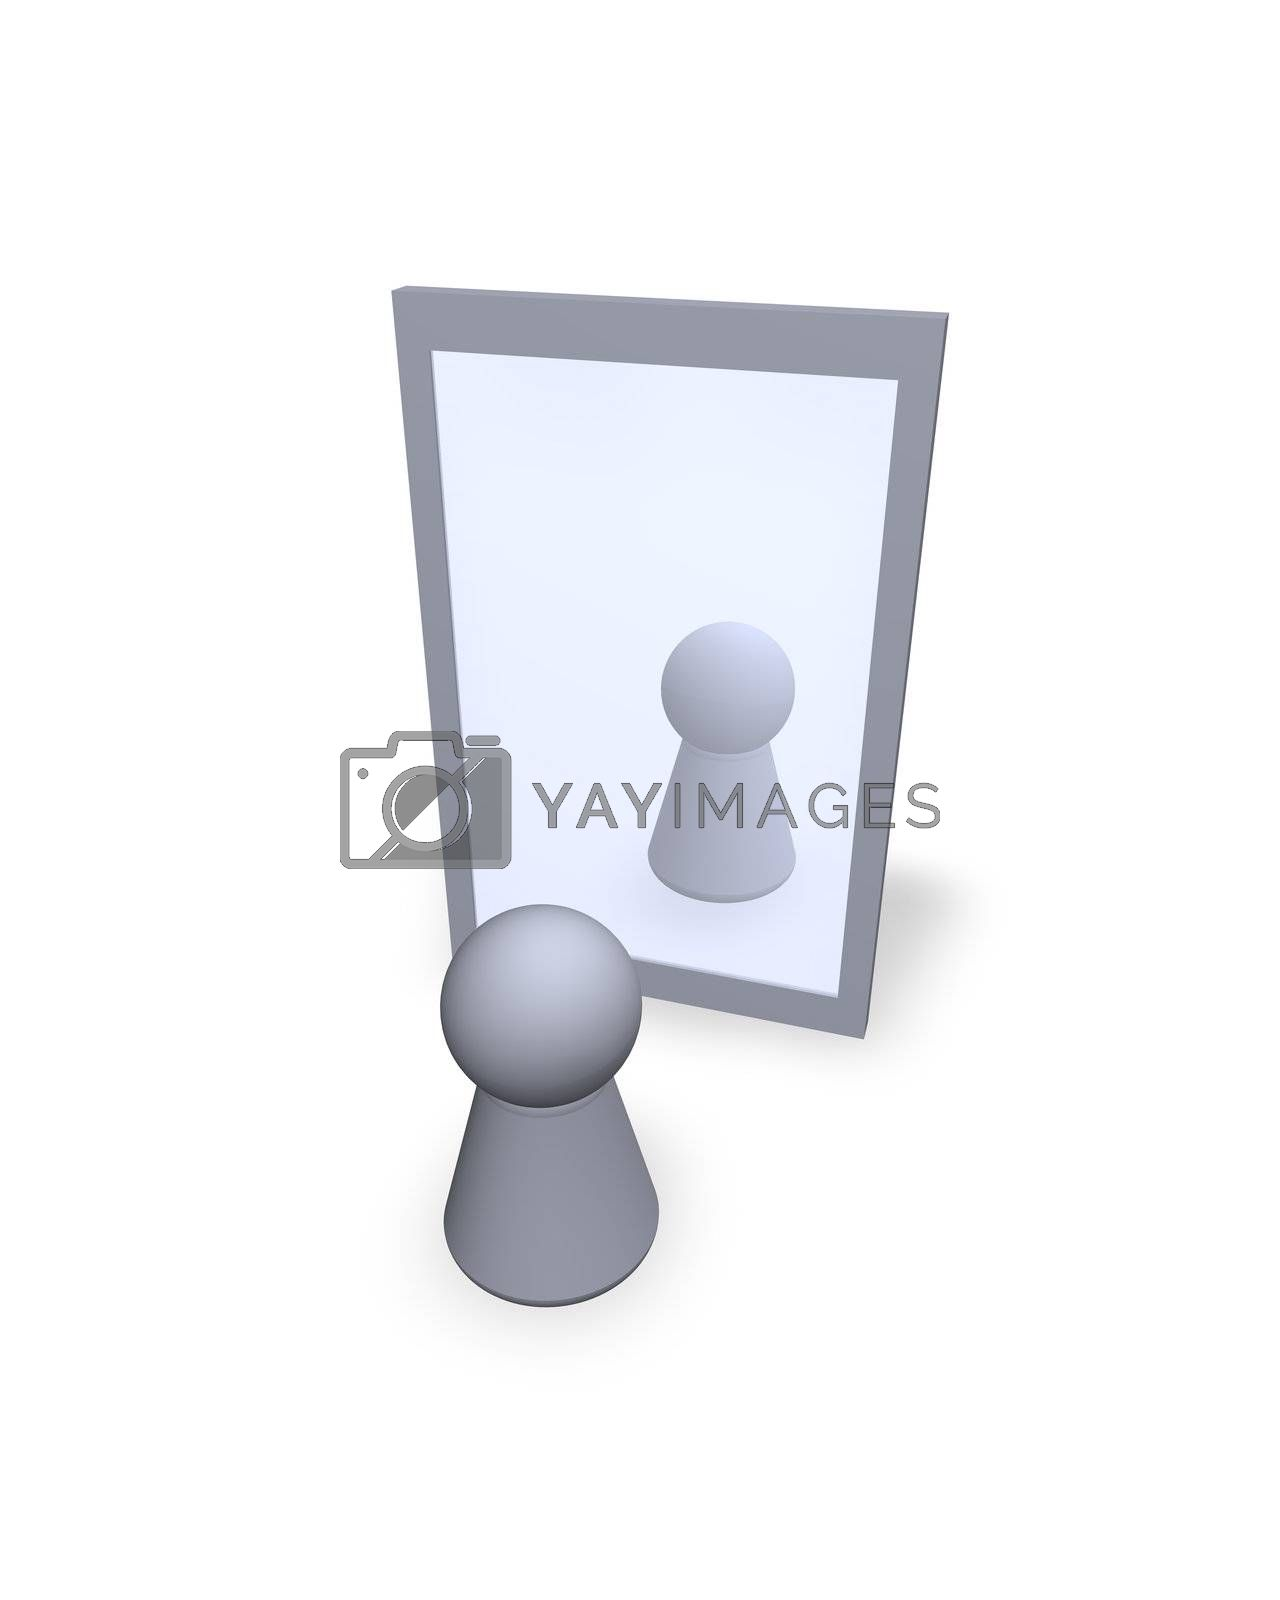 play figure  see itself at a mirror